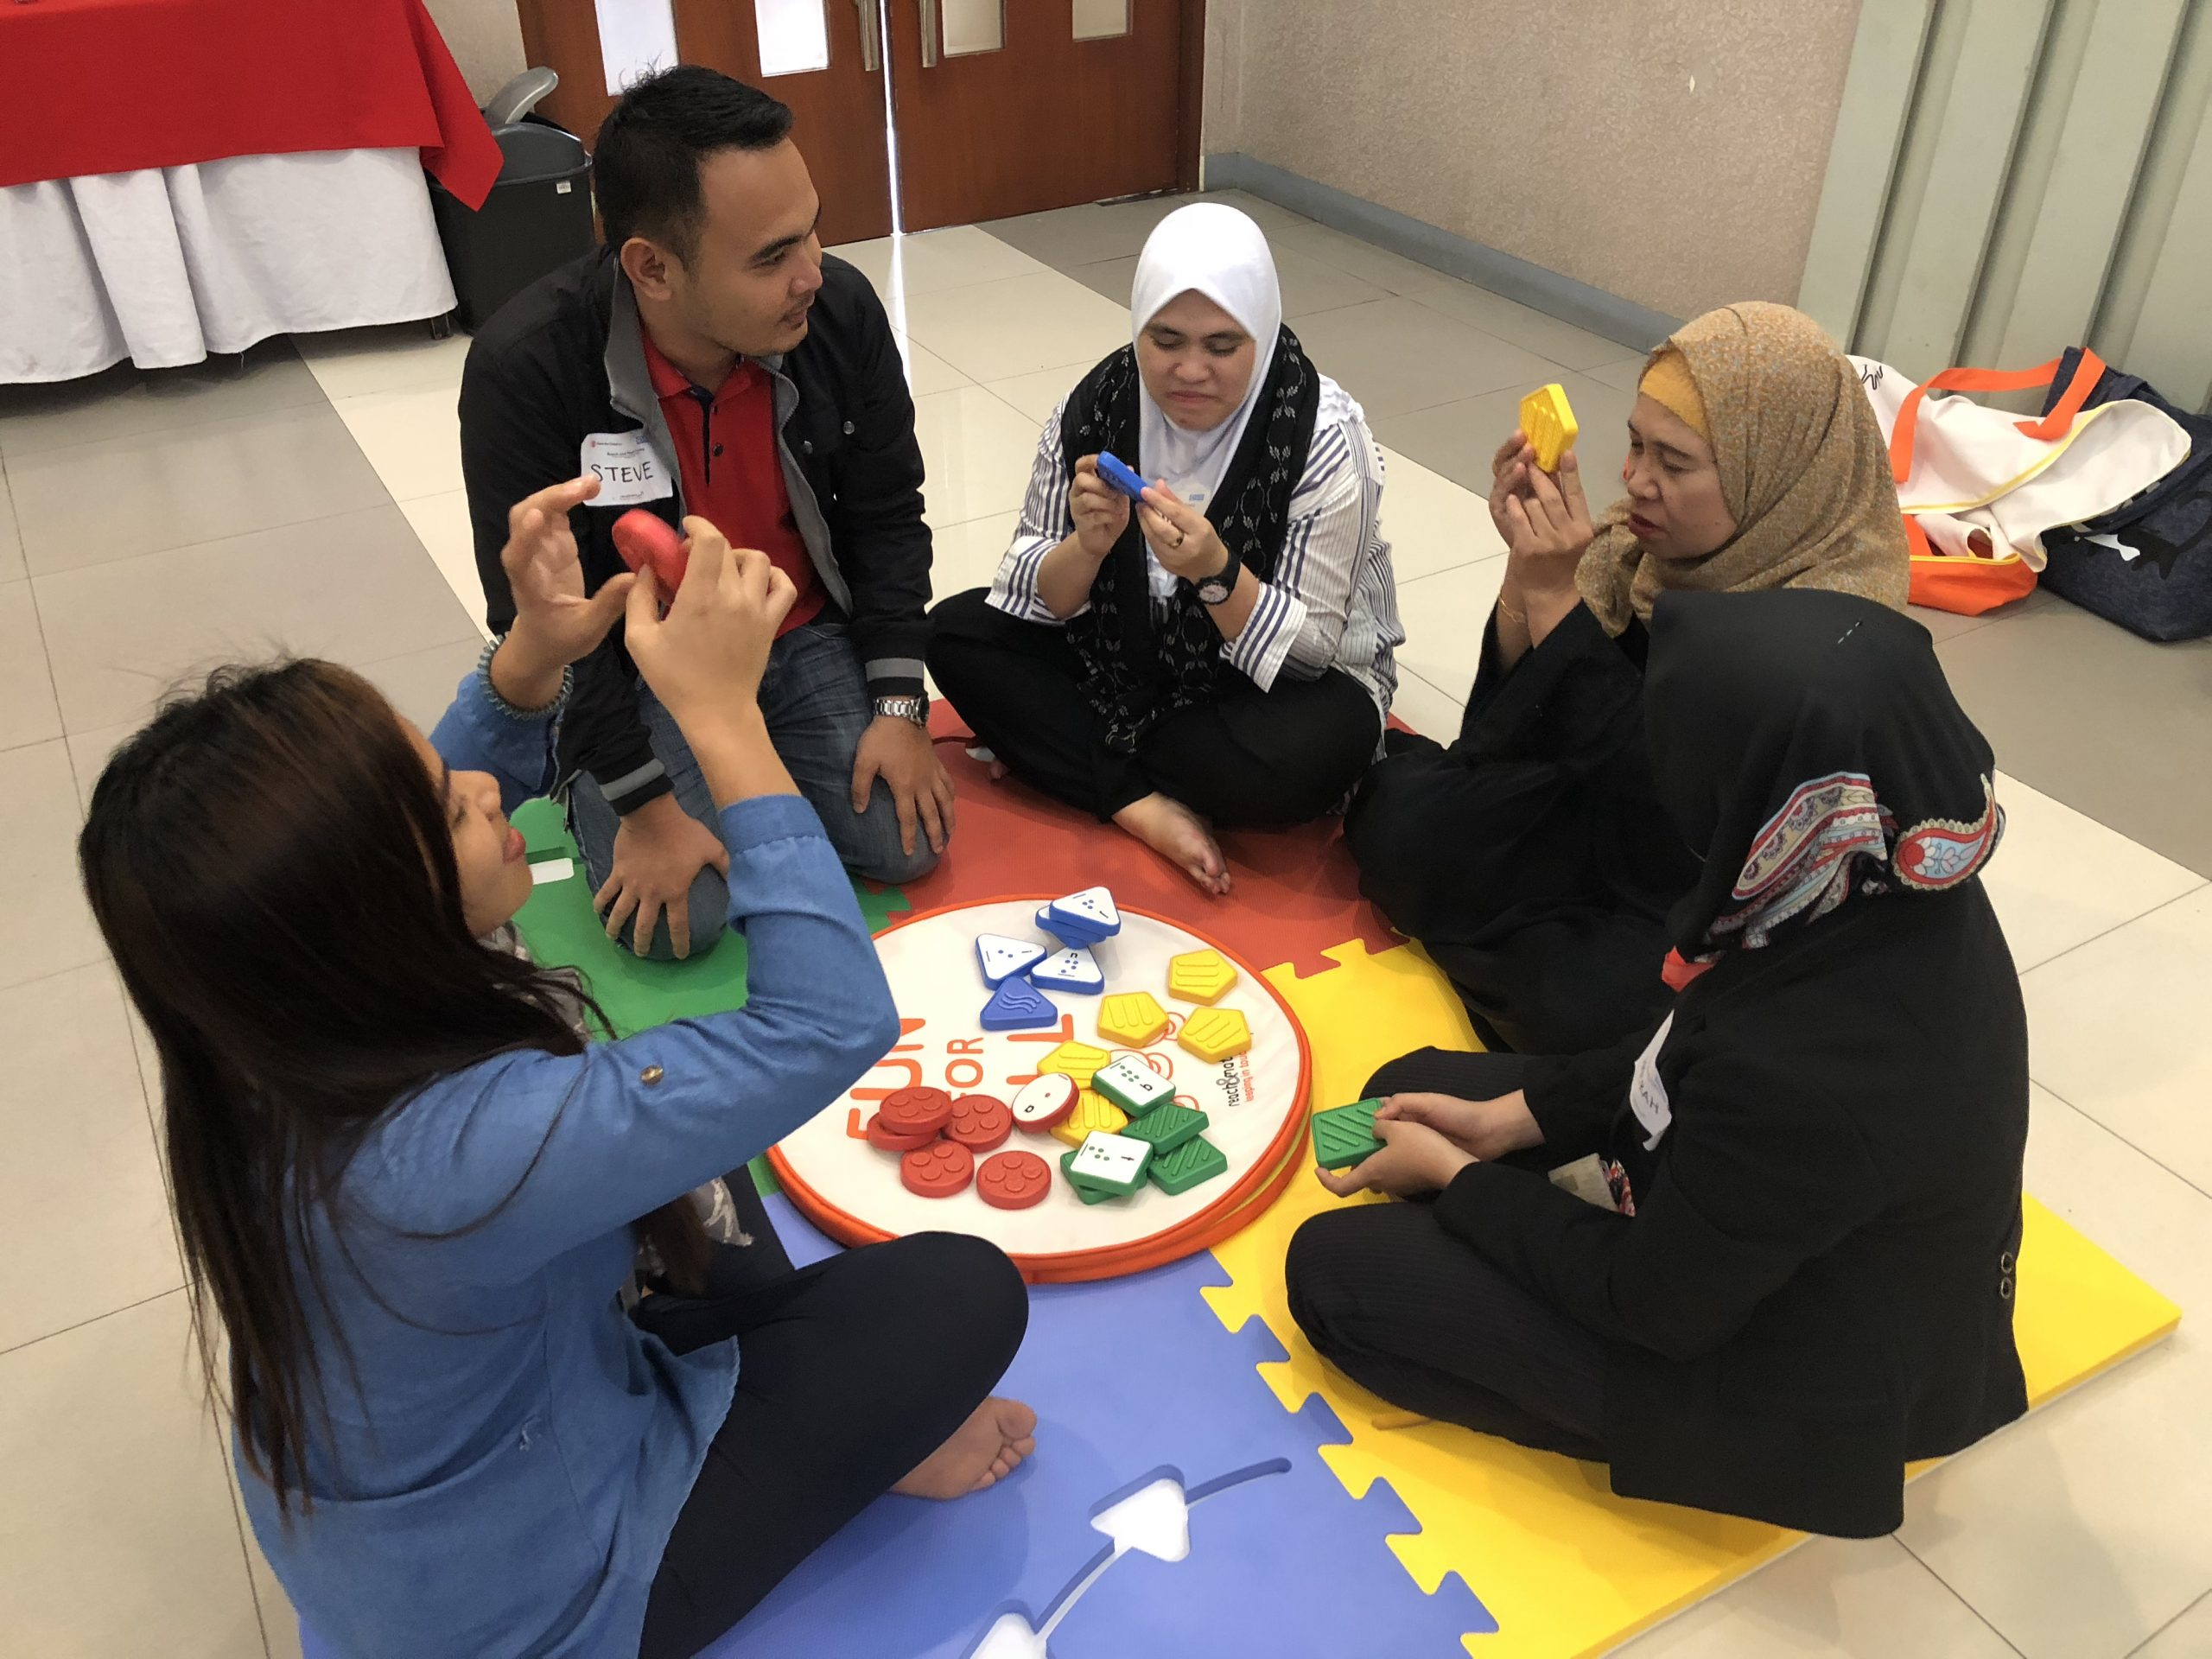 tung wah teachers practice reach and match with children